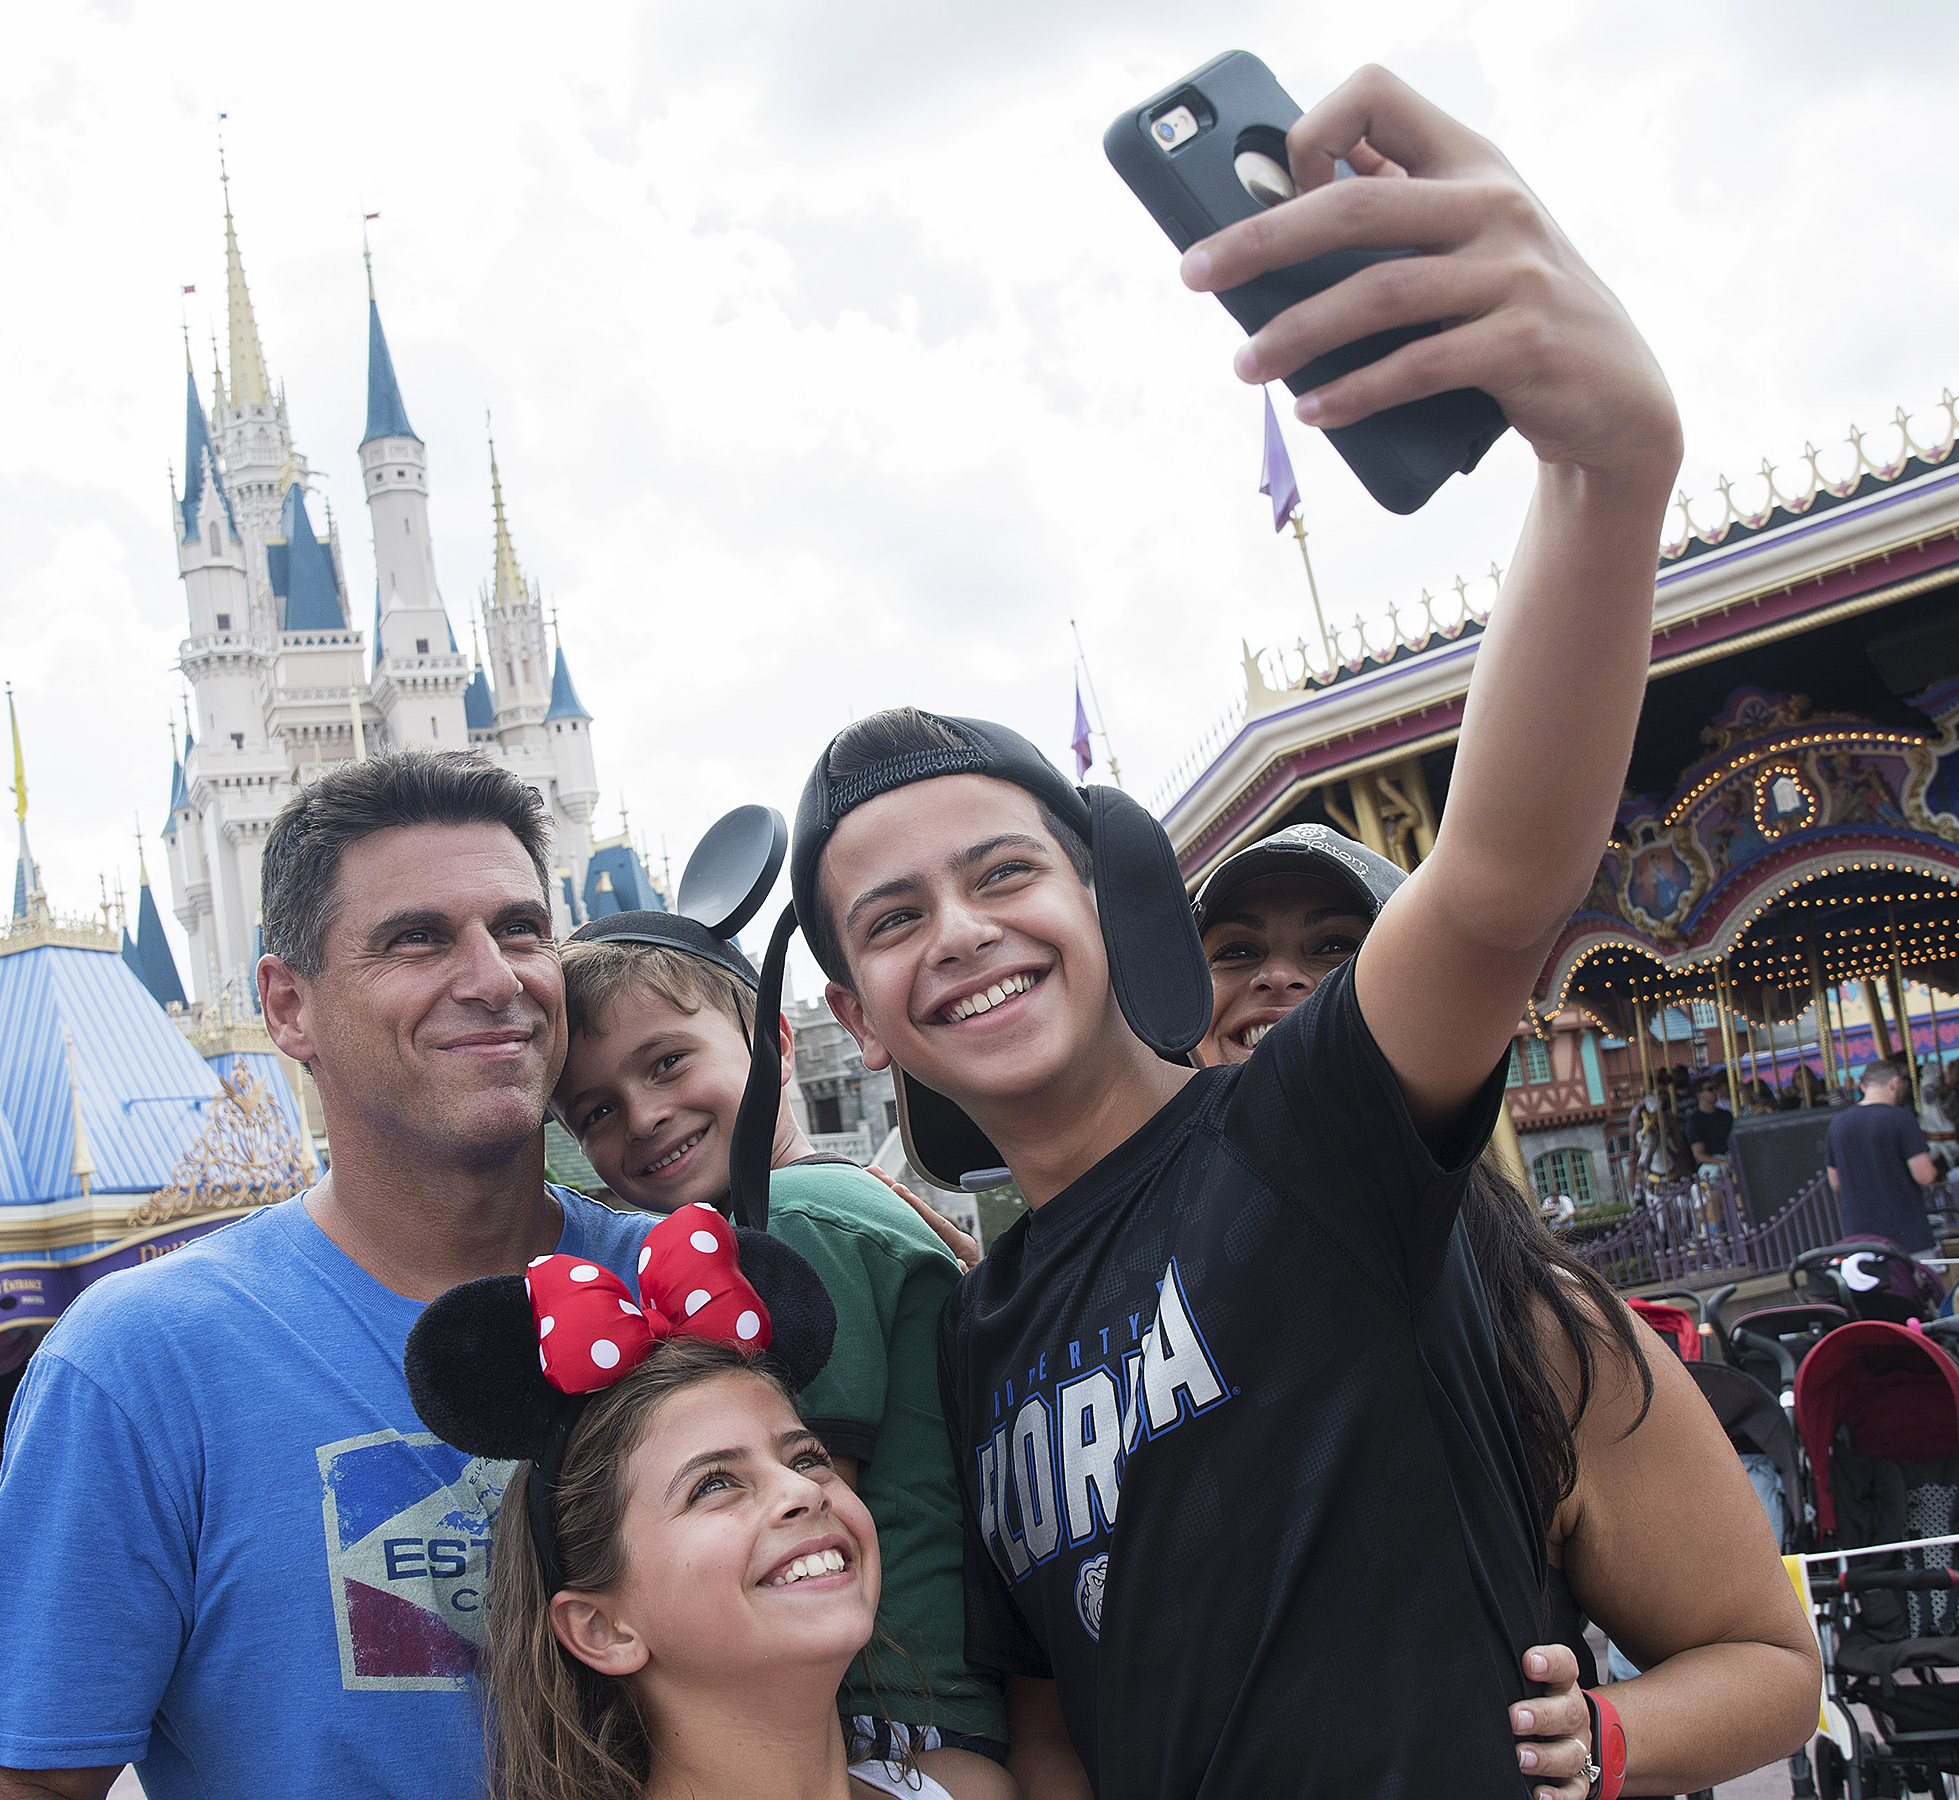 The Sussman family from Weston, Florida snaps a fun selfie in front of the iconic Cinderella Castle at Walt Disney World Resort, just days after the storm.